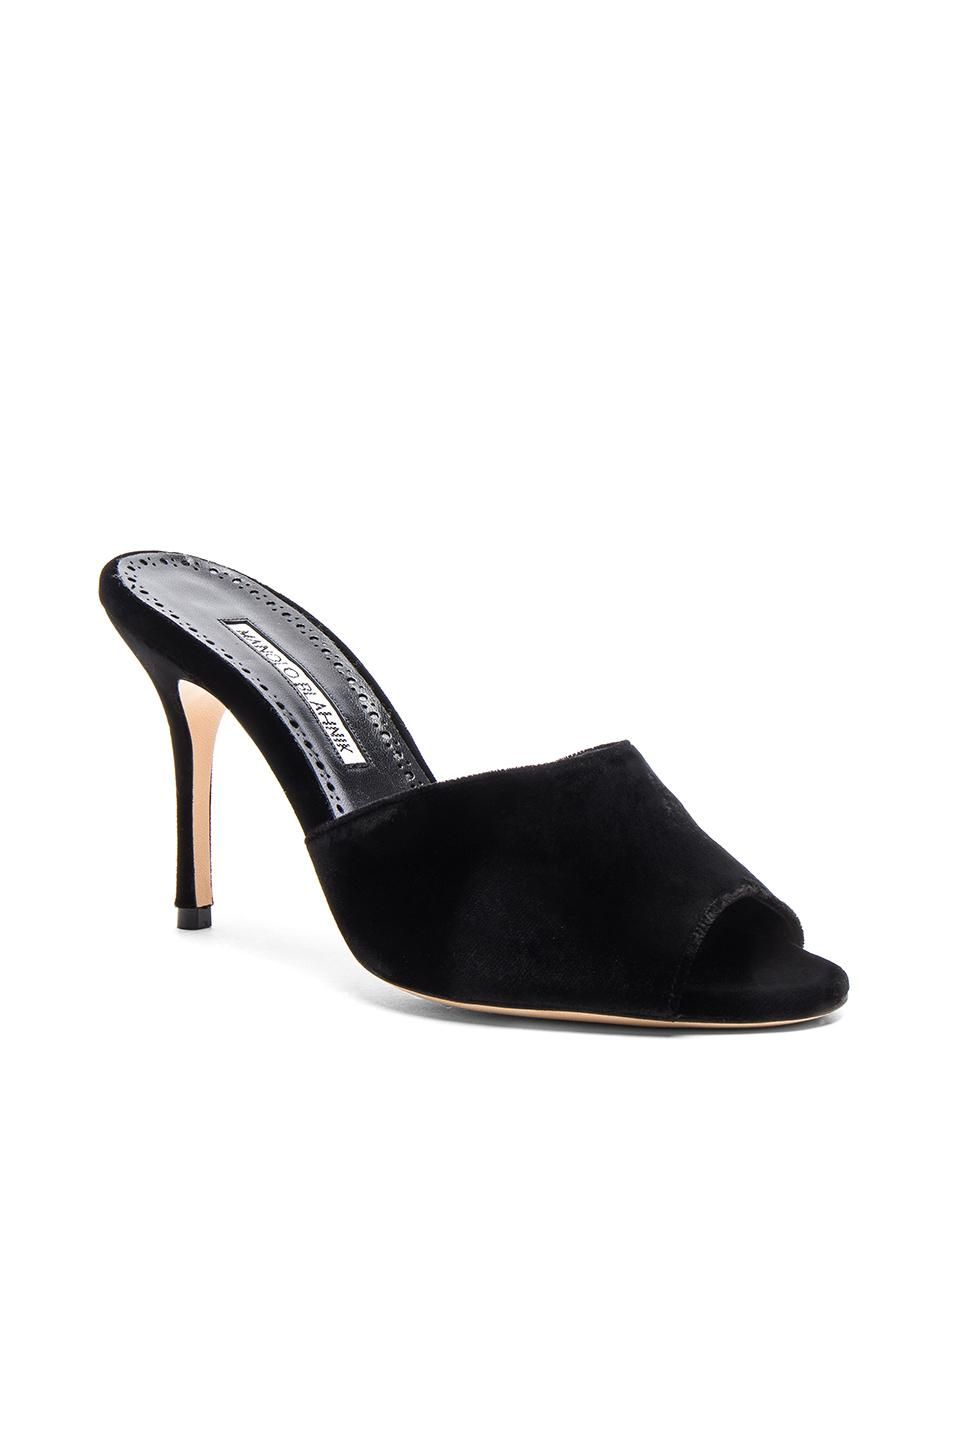 Manolo Blahnik - The perfect 90s velvet mule that can transform any denim, skirt or dress